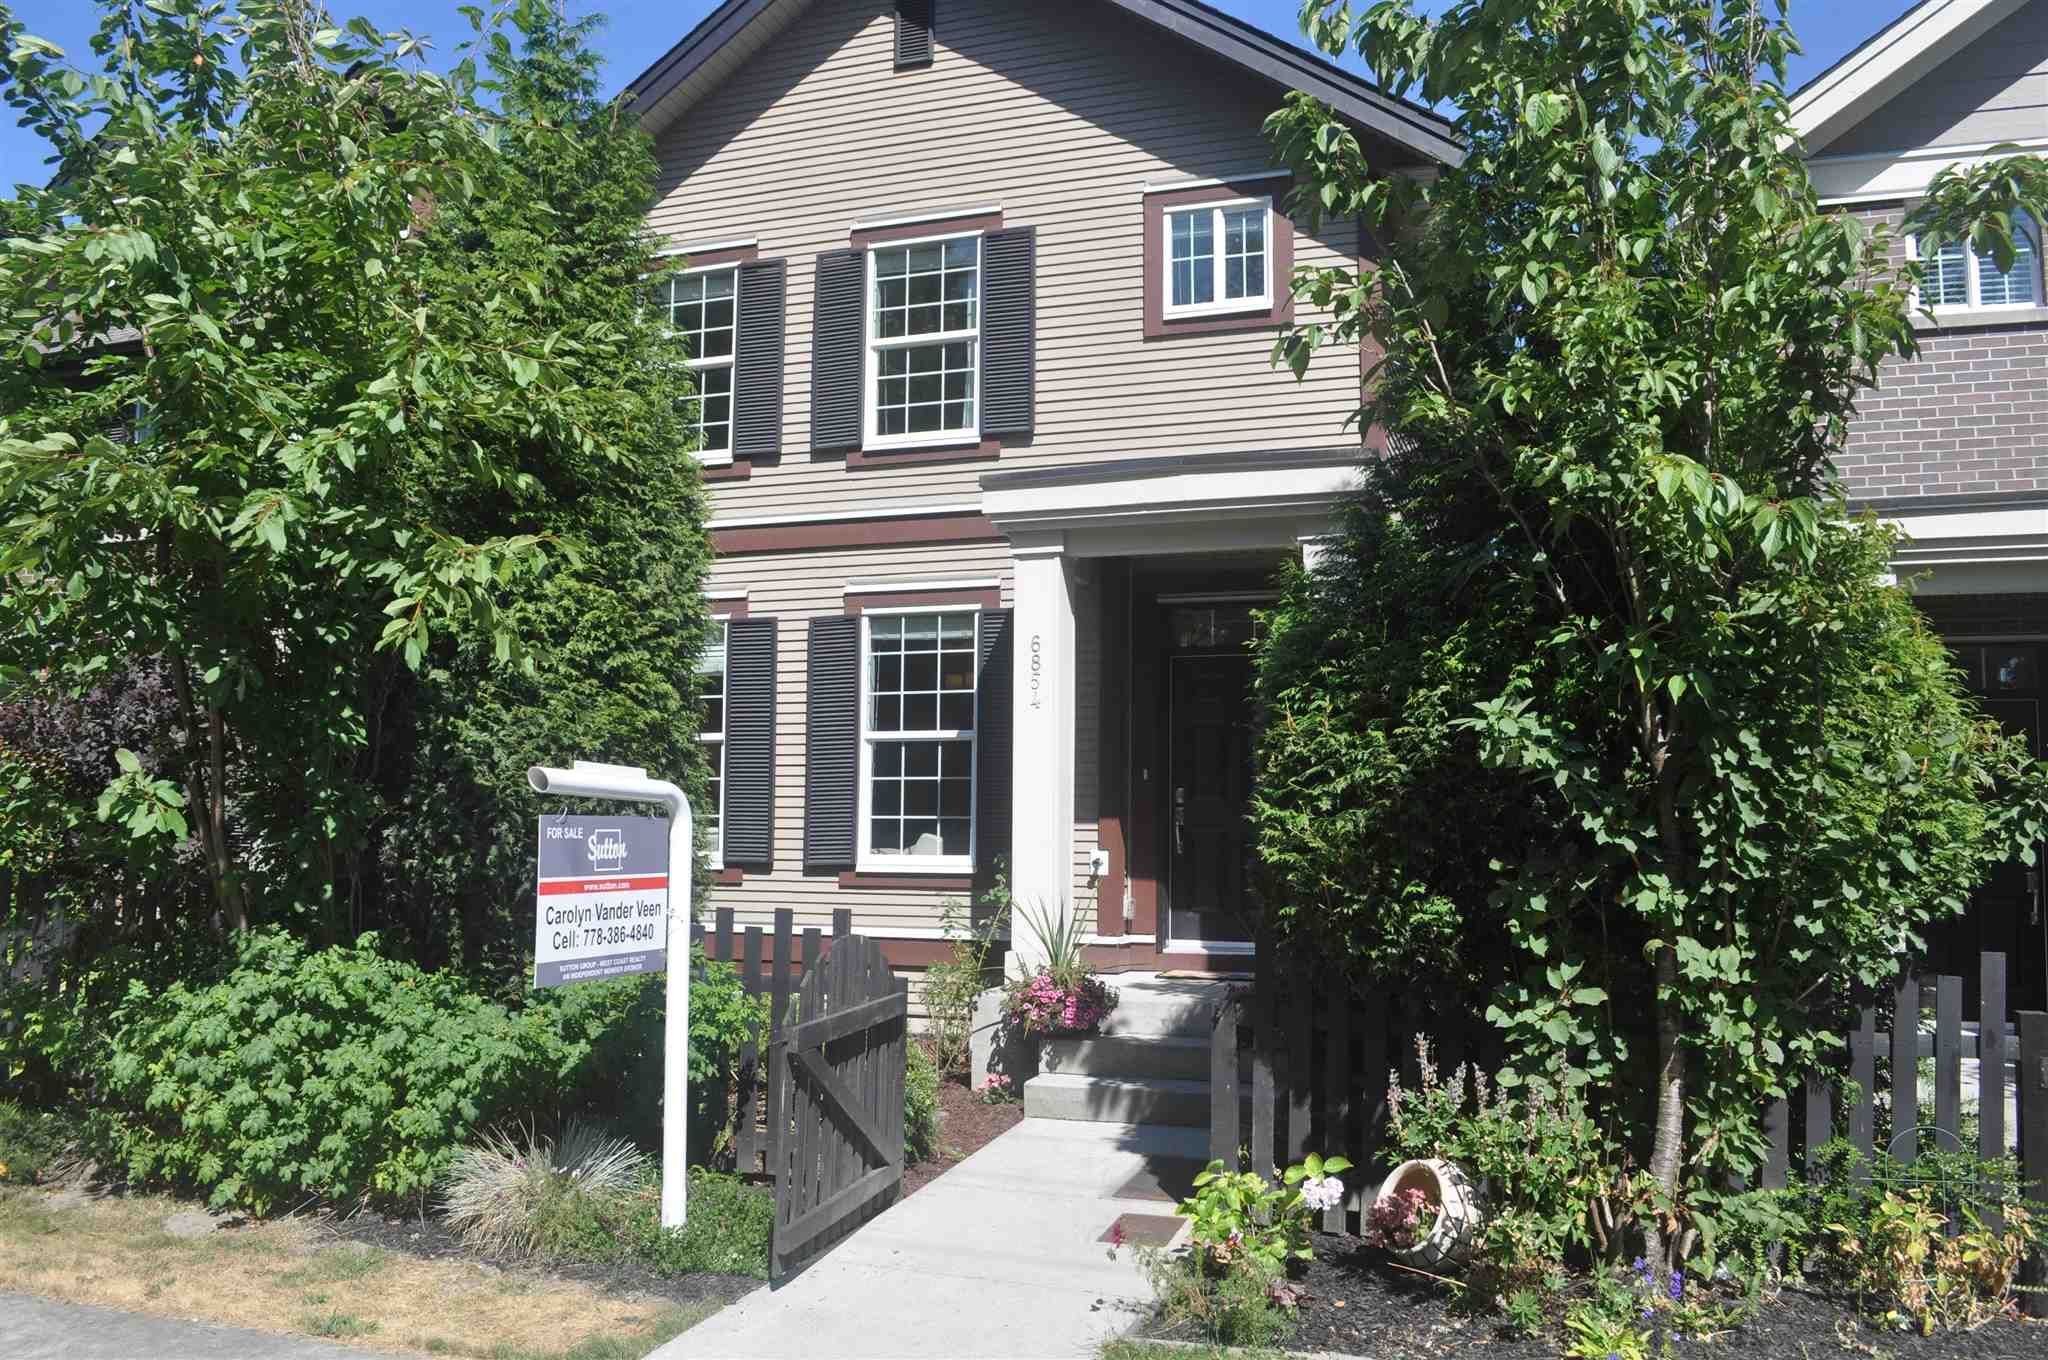 """Main Photo: 6854 208 Street in Langley: Willoughby Heights Condo for sale in """"Milner Heights"""" : MLS®# R2603848"""